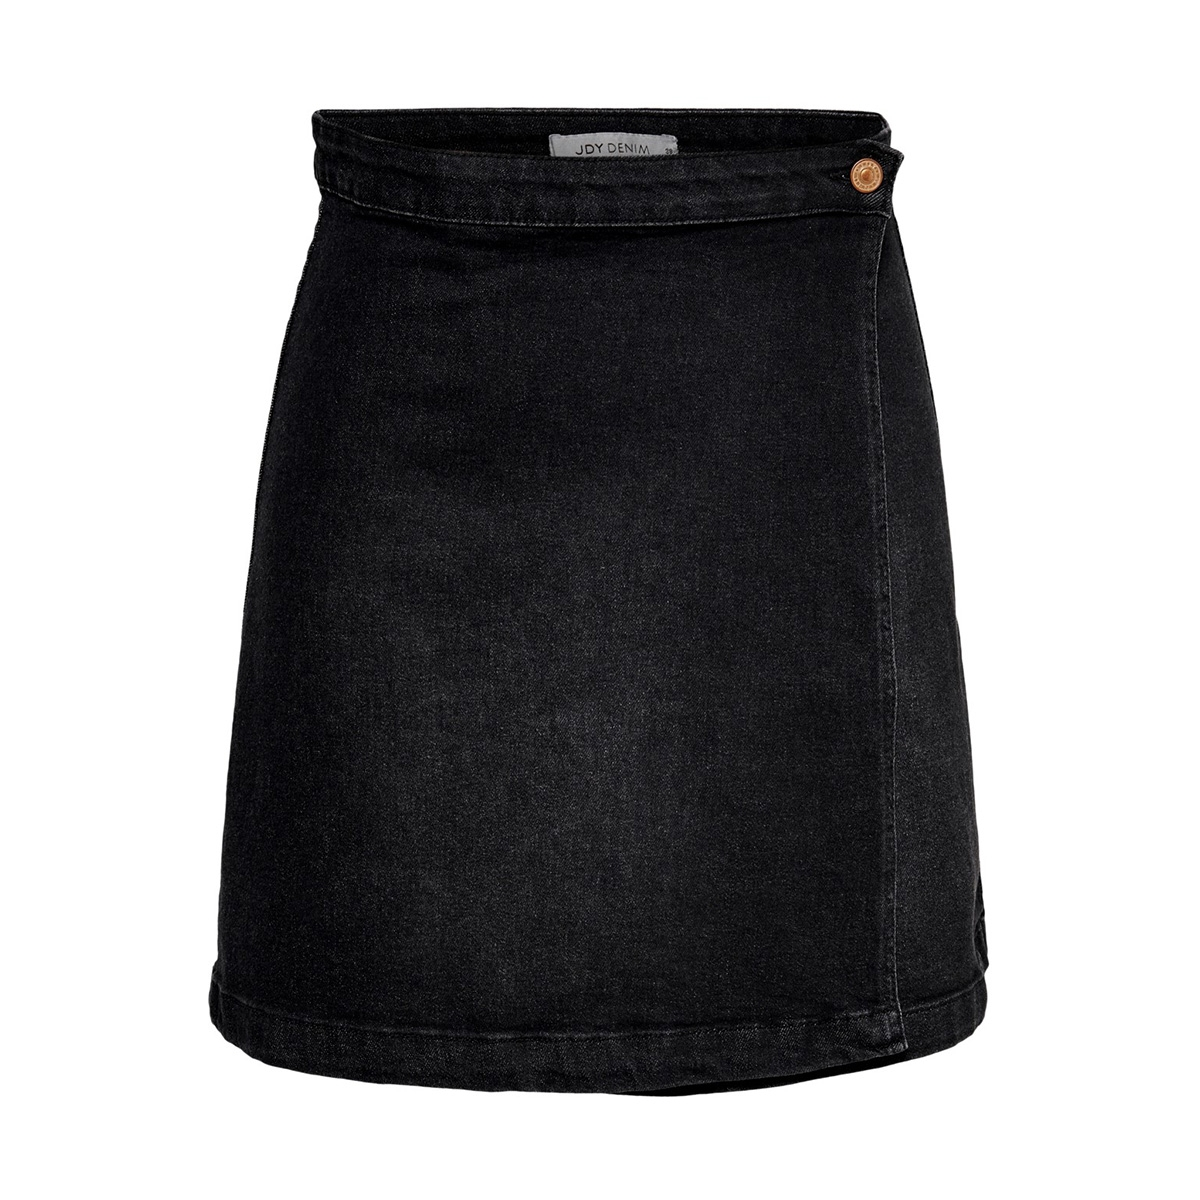 jdyally wrap skirt dnm 15179993 jacqueline de yong rok black denim